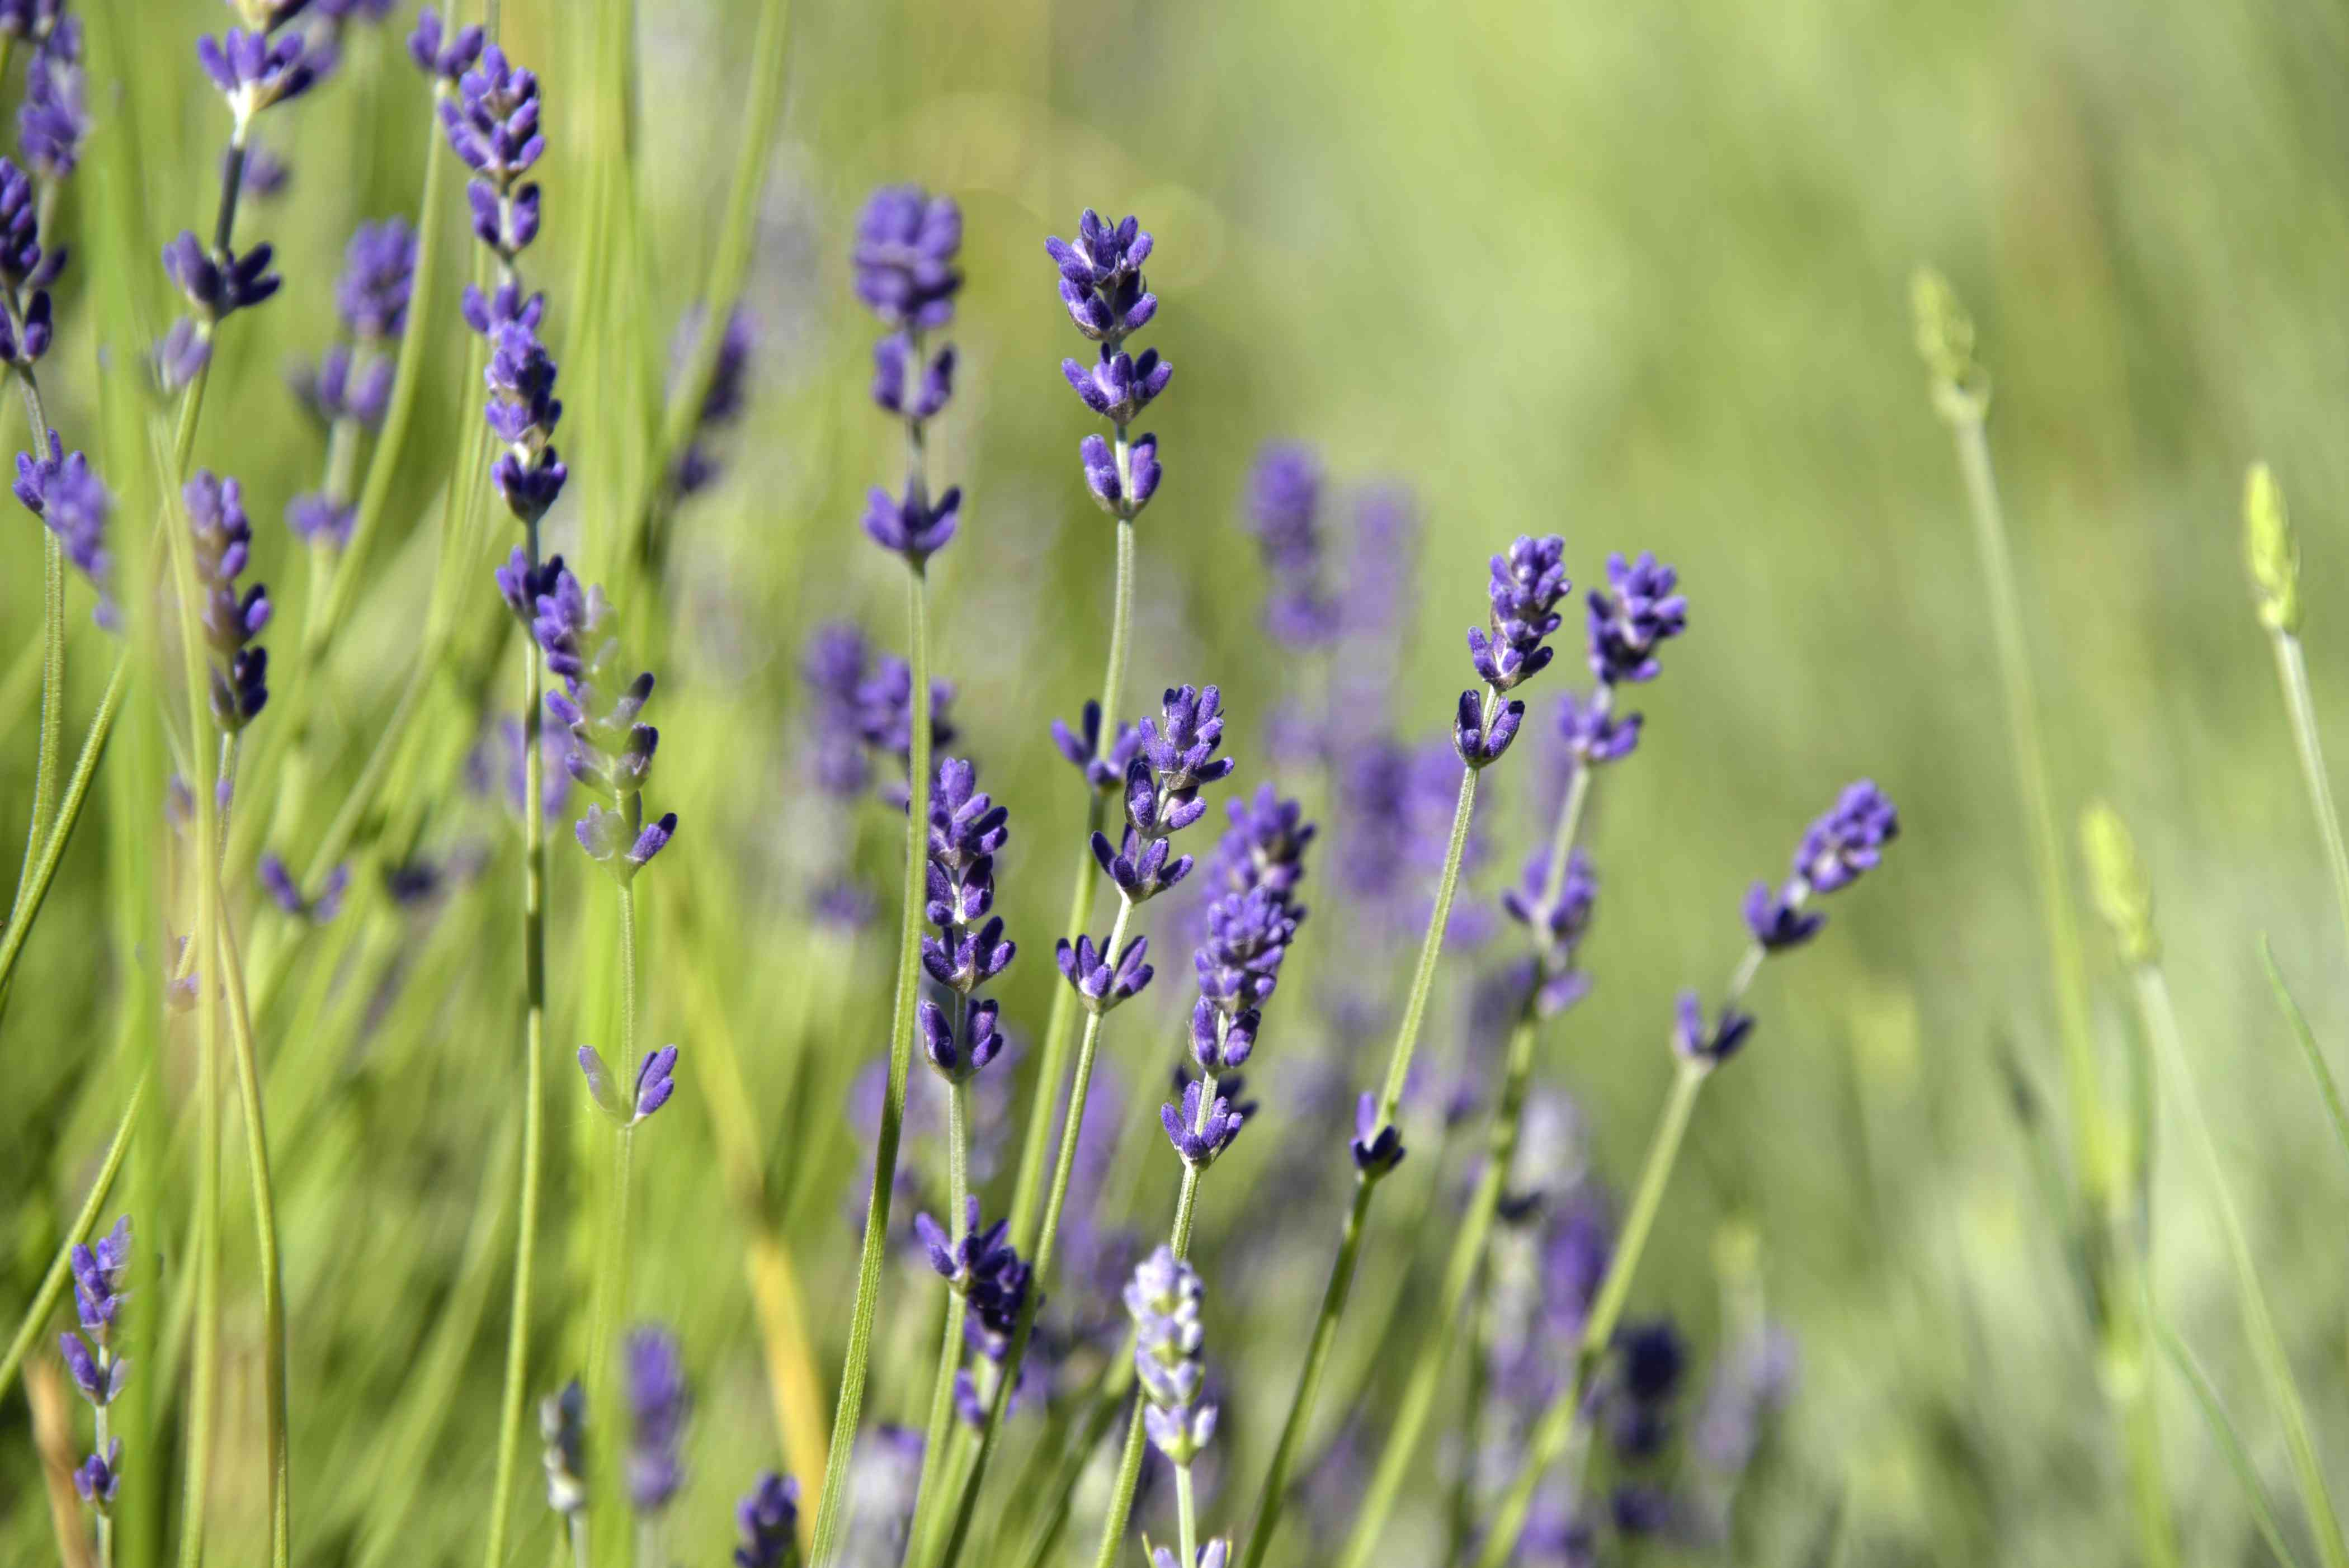 Munstead lavender with bright purple blooms on thin stems closeup